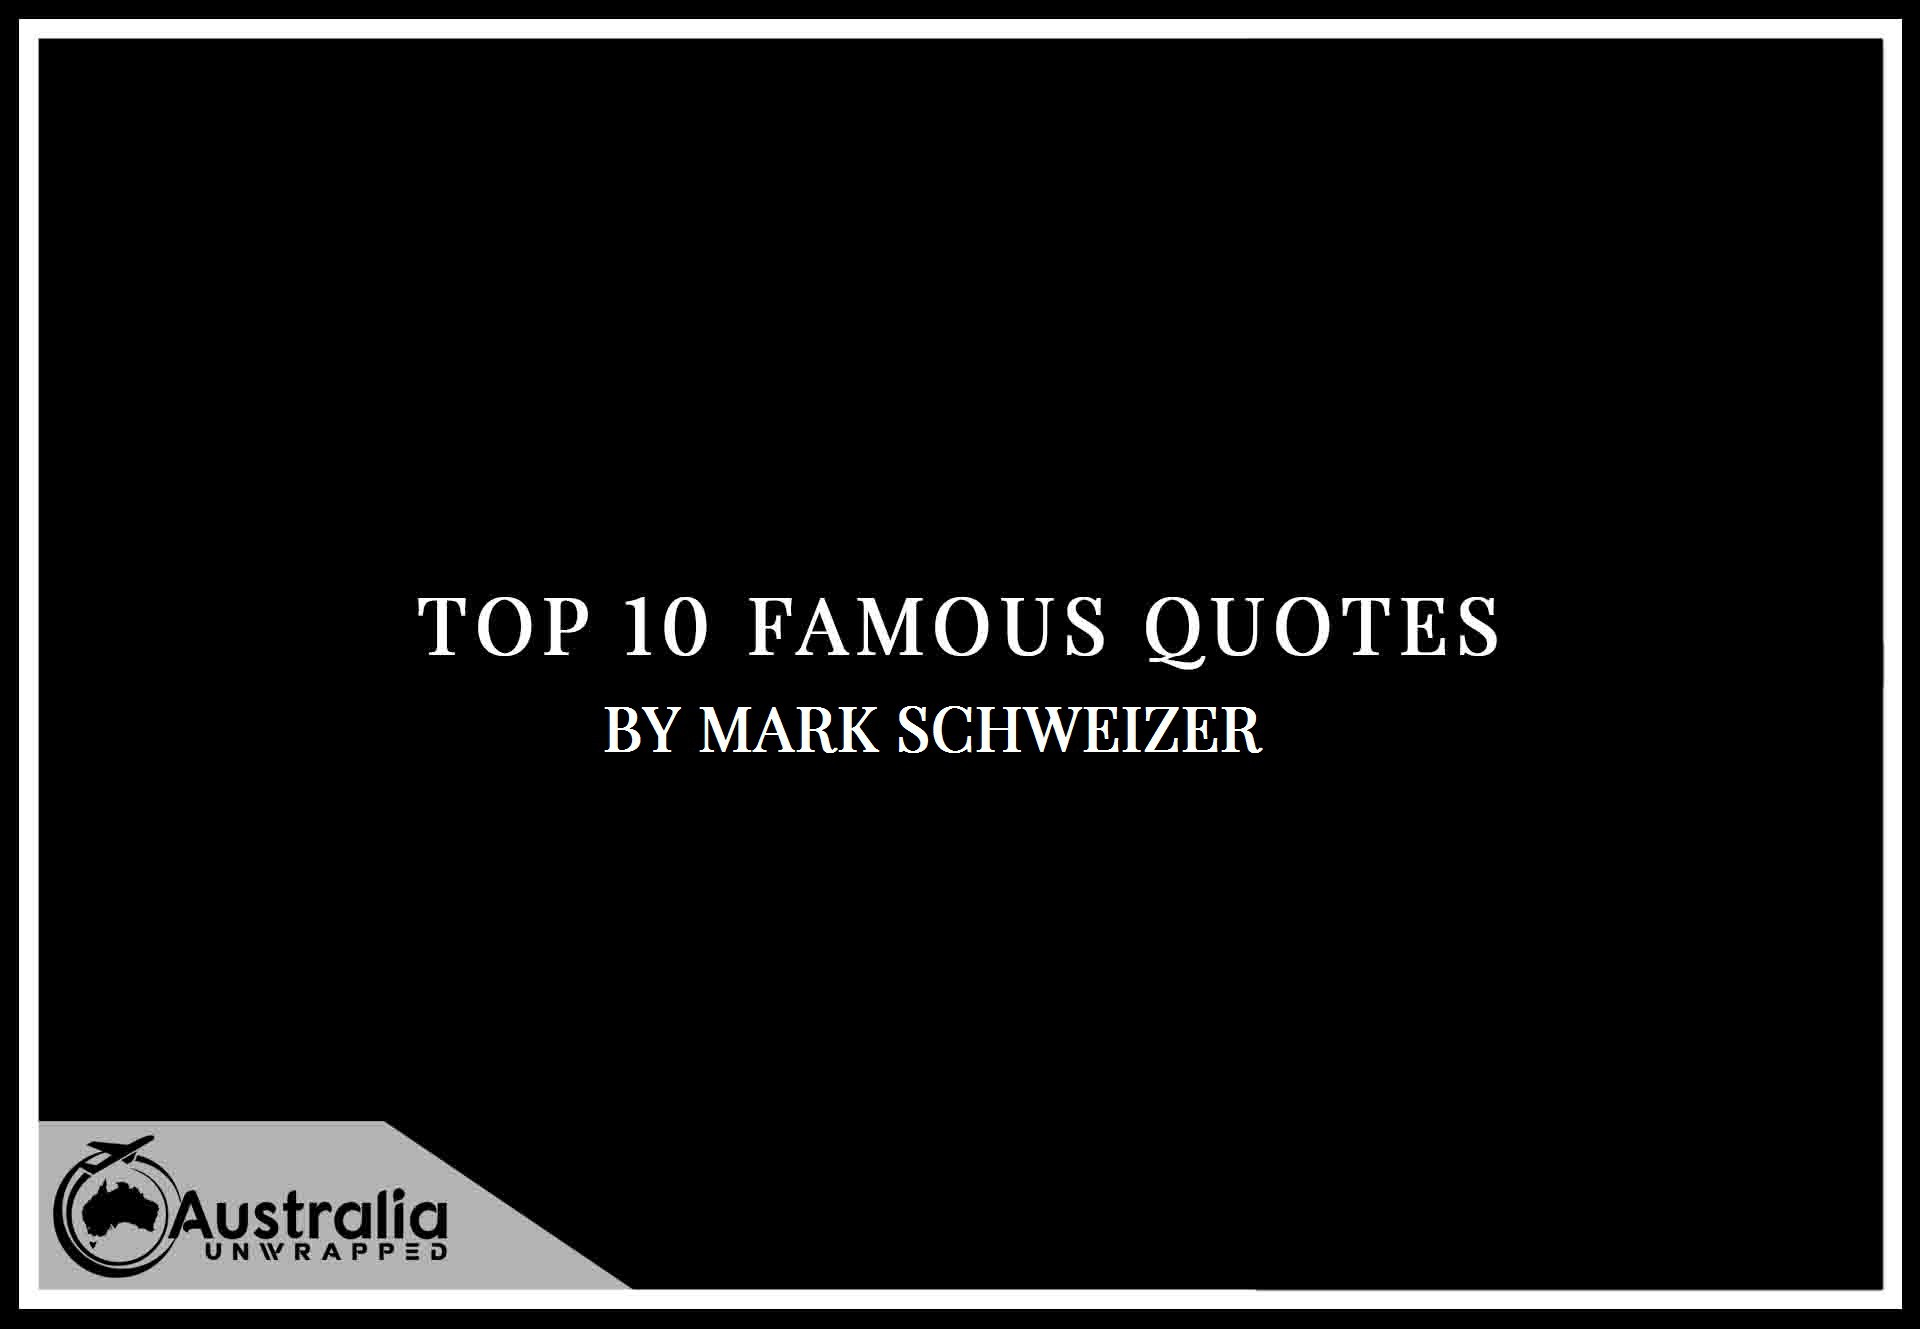 Mark Schweizer's Top 10 Popular and Famous Quotes